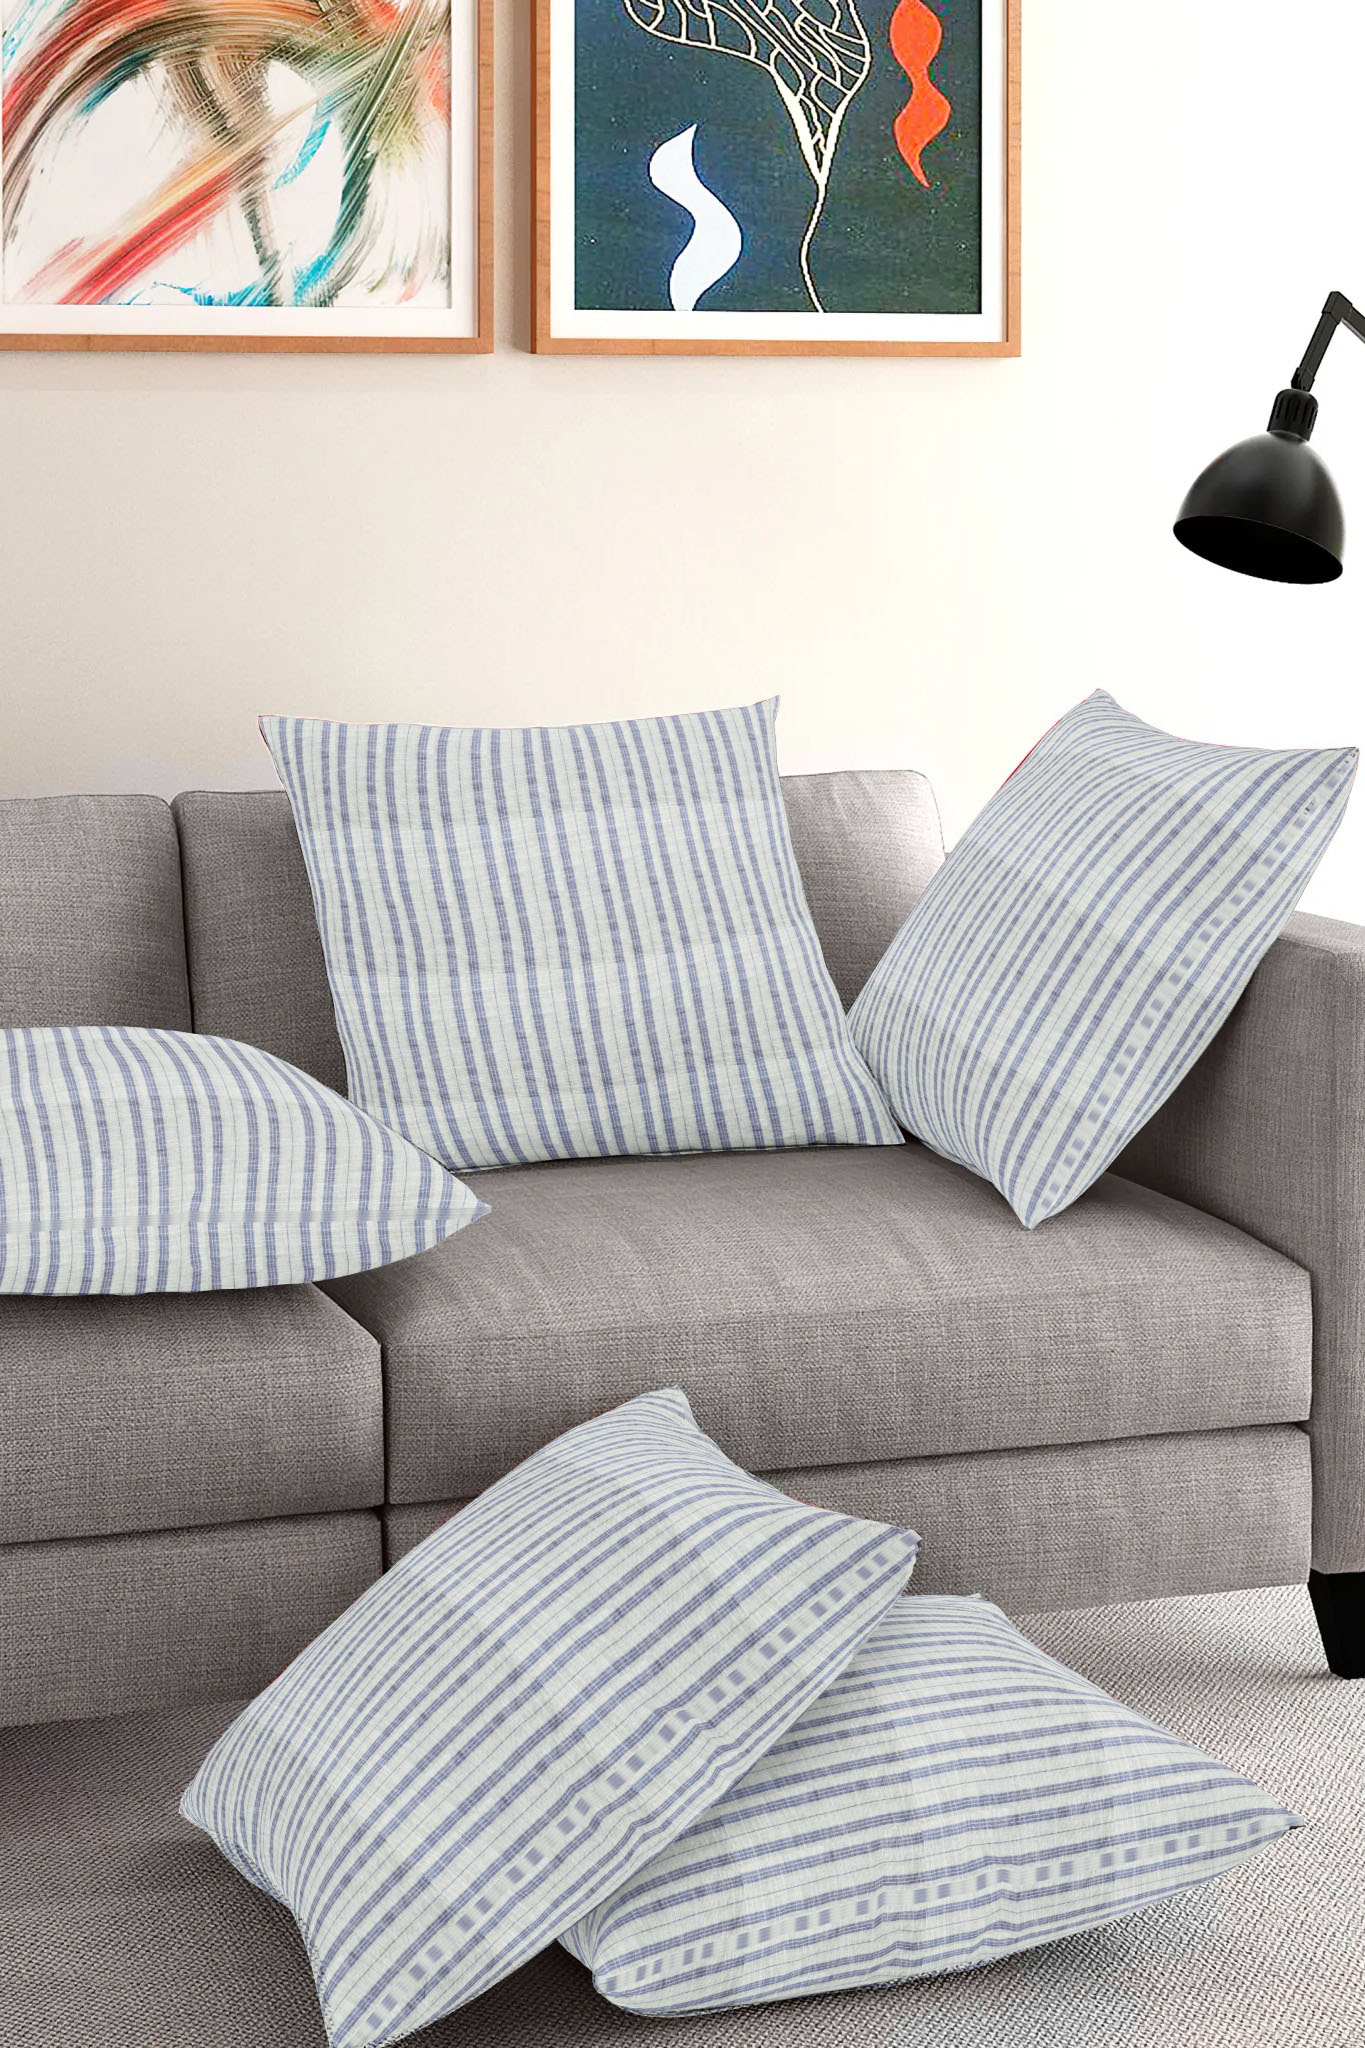 Set of 5-White Blue Cotton Cushion Cover-35402-16x16 Inches